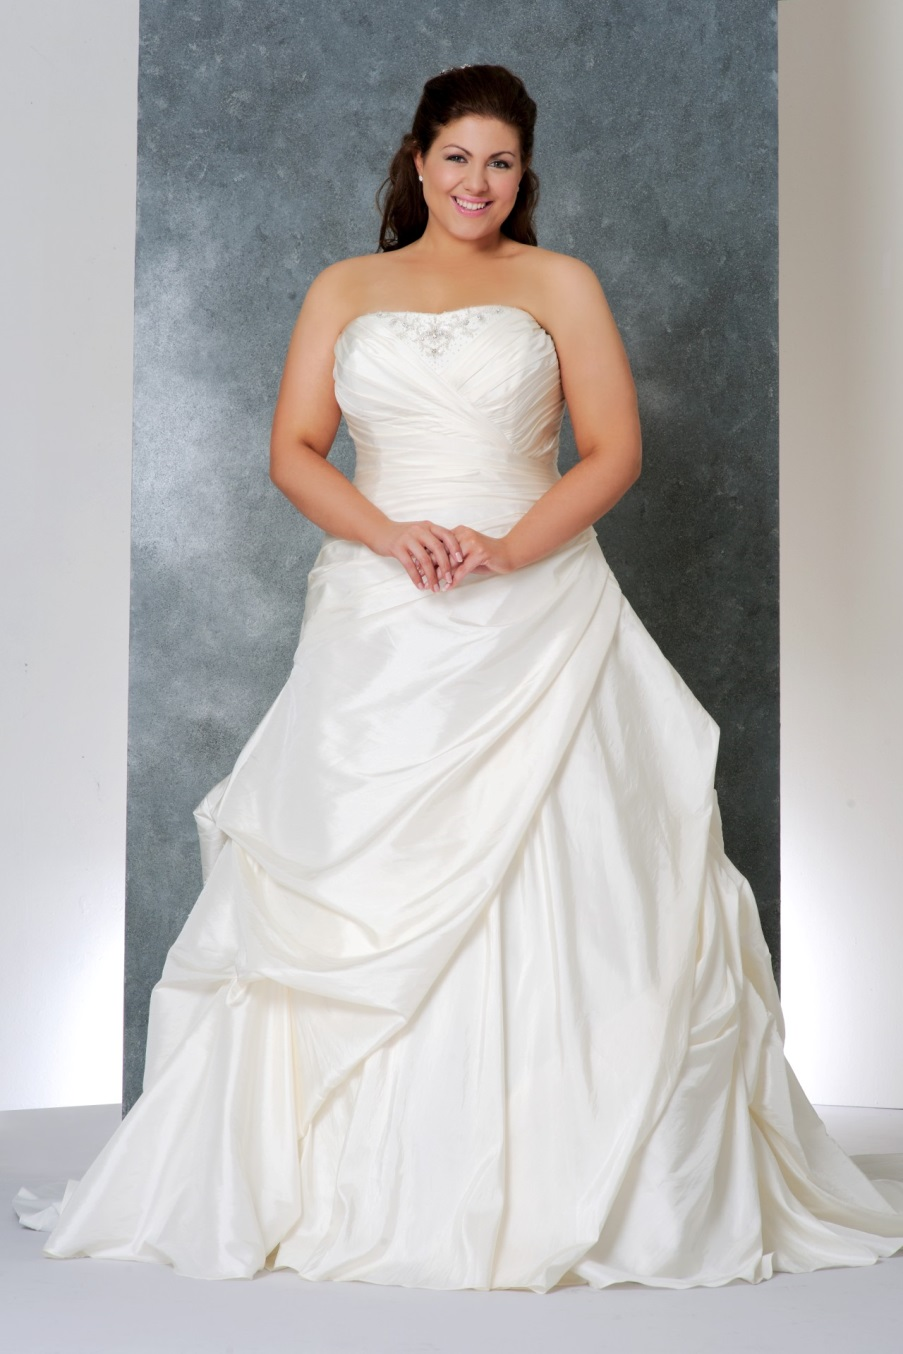 OneStopPlus, Affordable Plus Size Wedding Gowns, Catherines Plus Size, Plus Size Women's Dresses for Weddings, Lane Bryant Formal Dresses, Lane Bryant Dresses, Plus Size Mother of the Bride Dresses, Plus Size Prom Dresses 2015